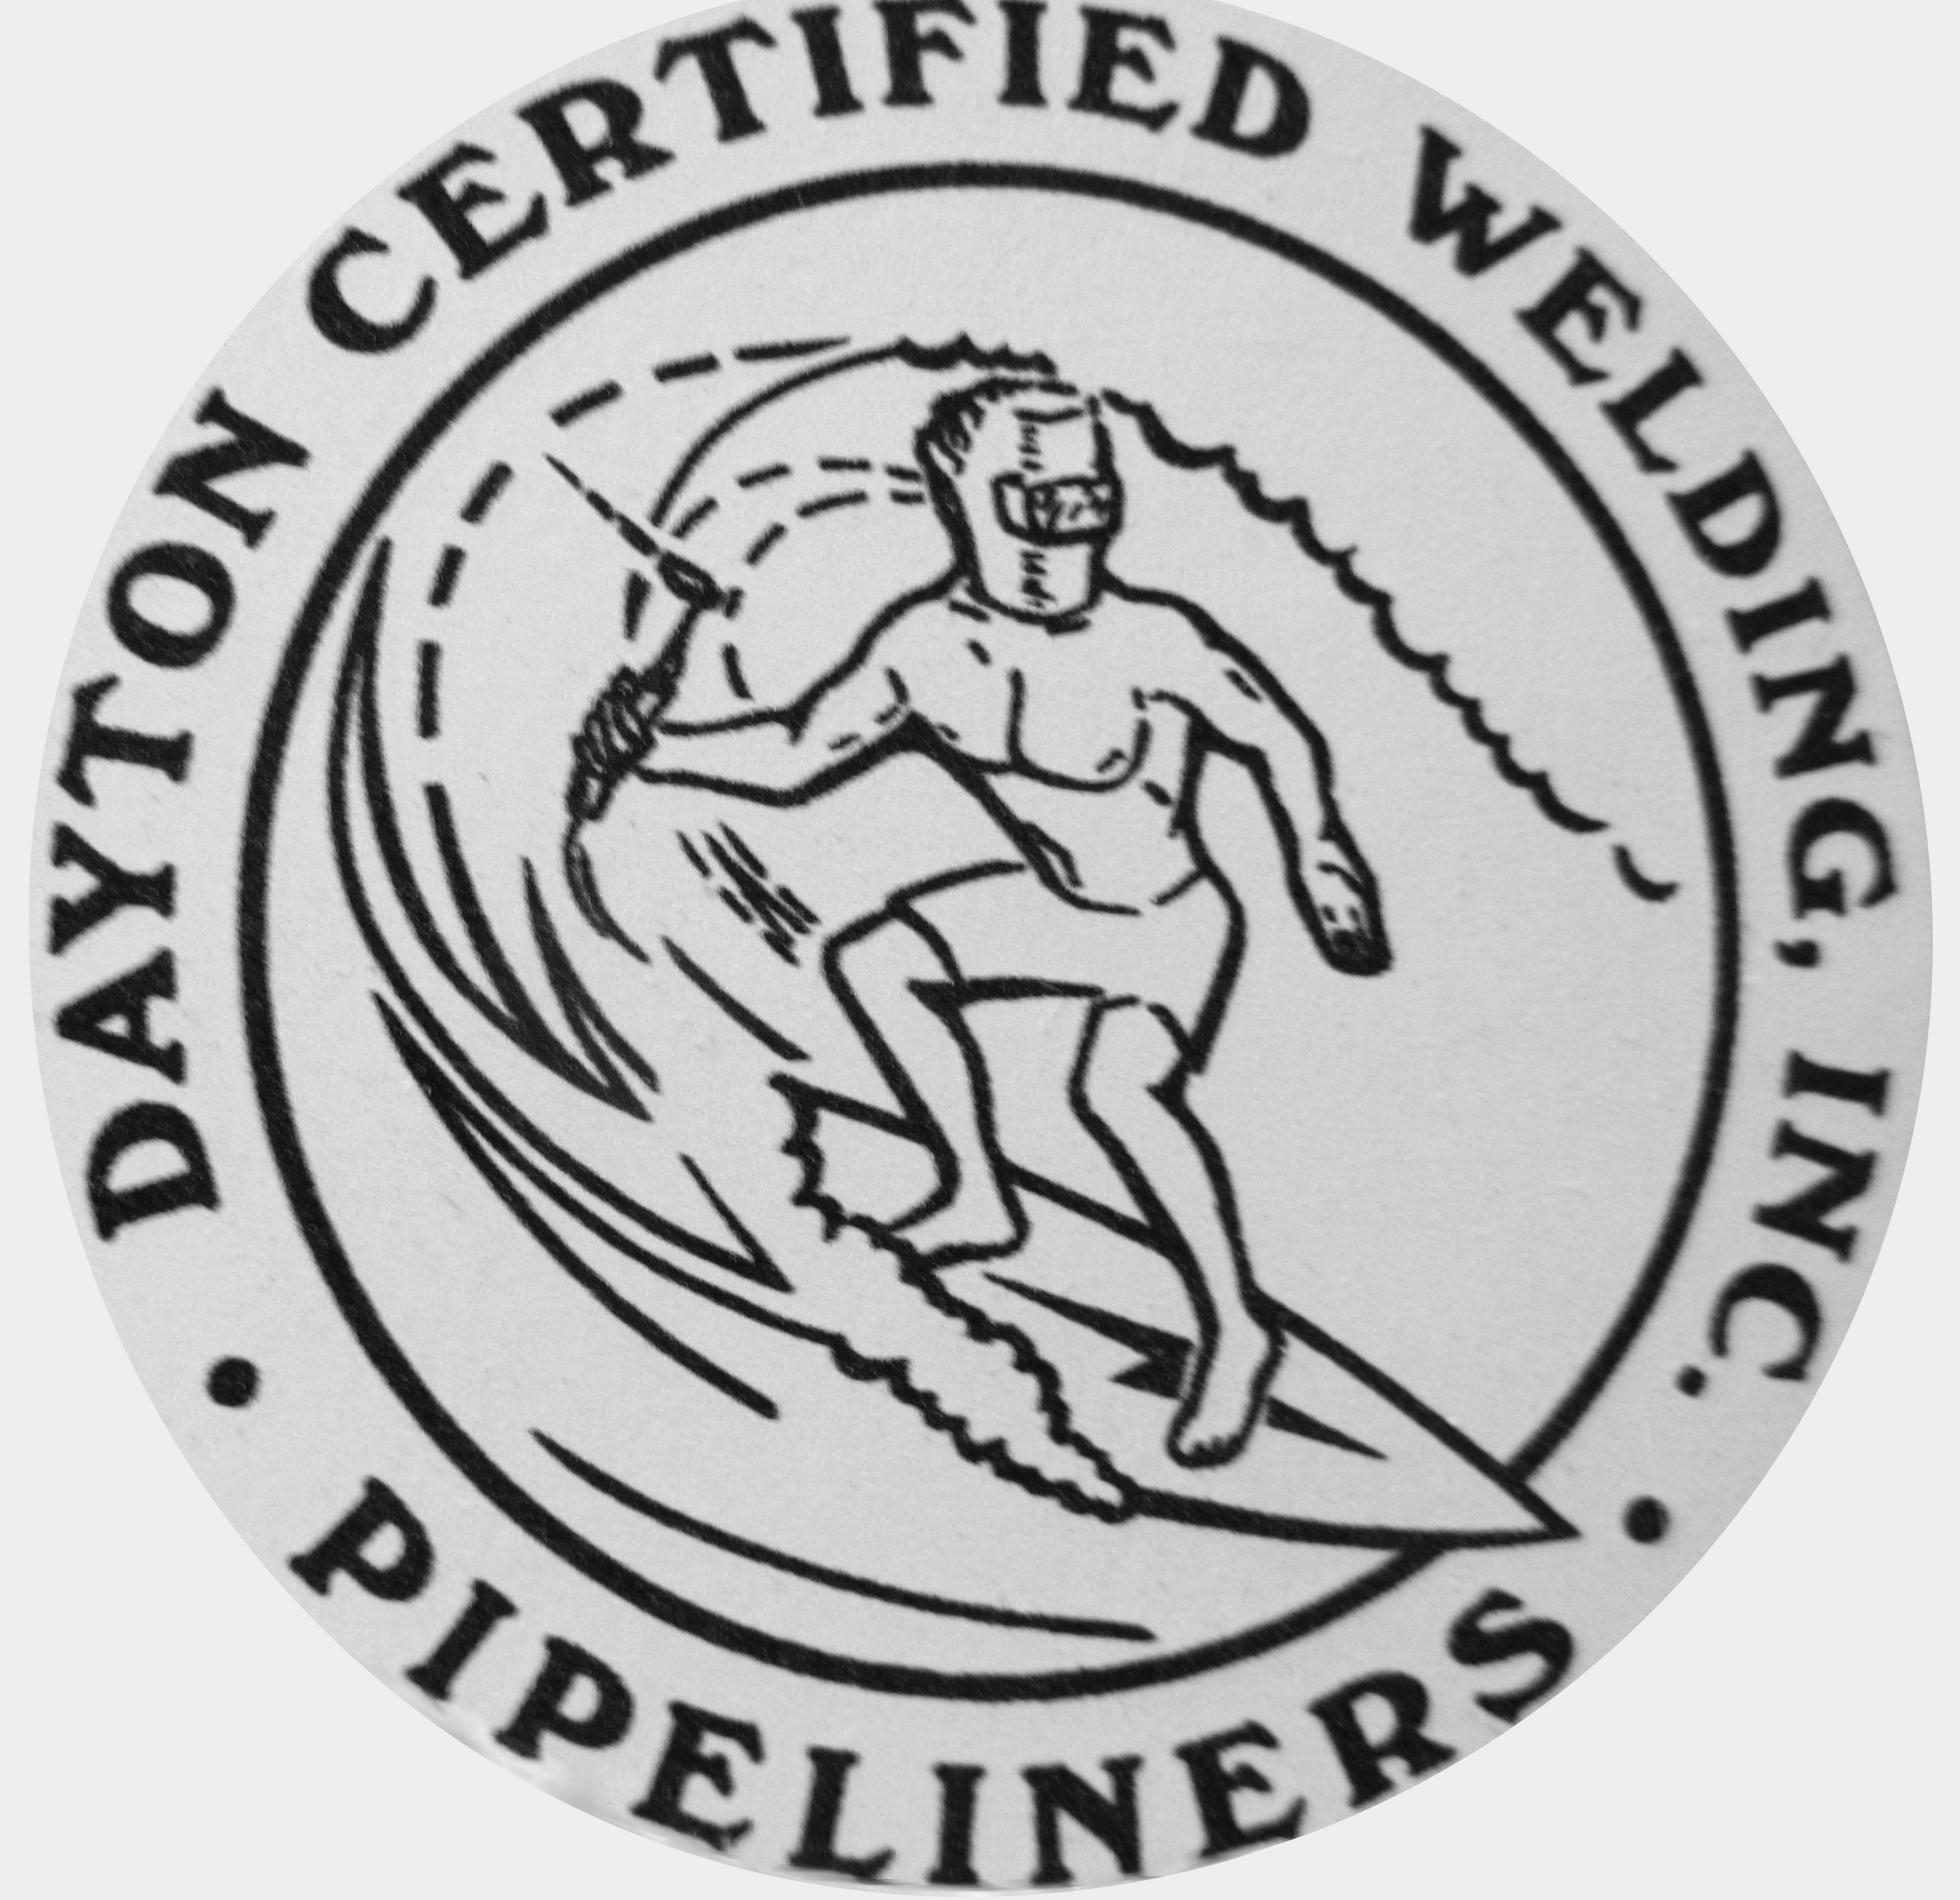 Dayton Certified Welding Inc.